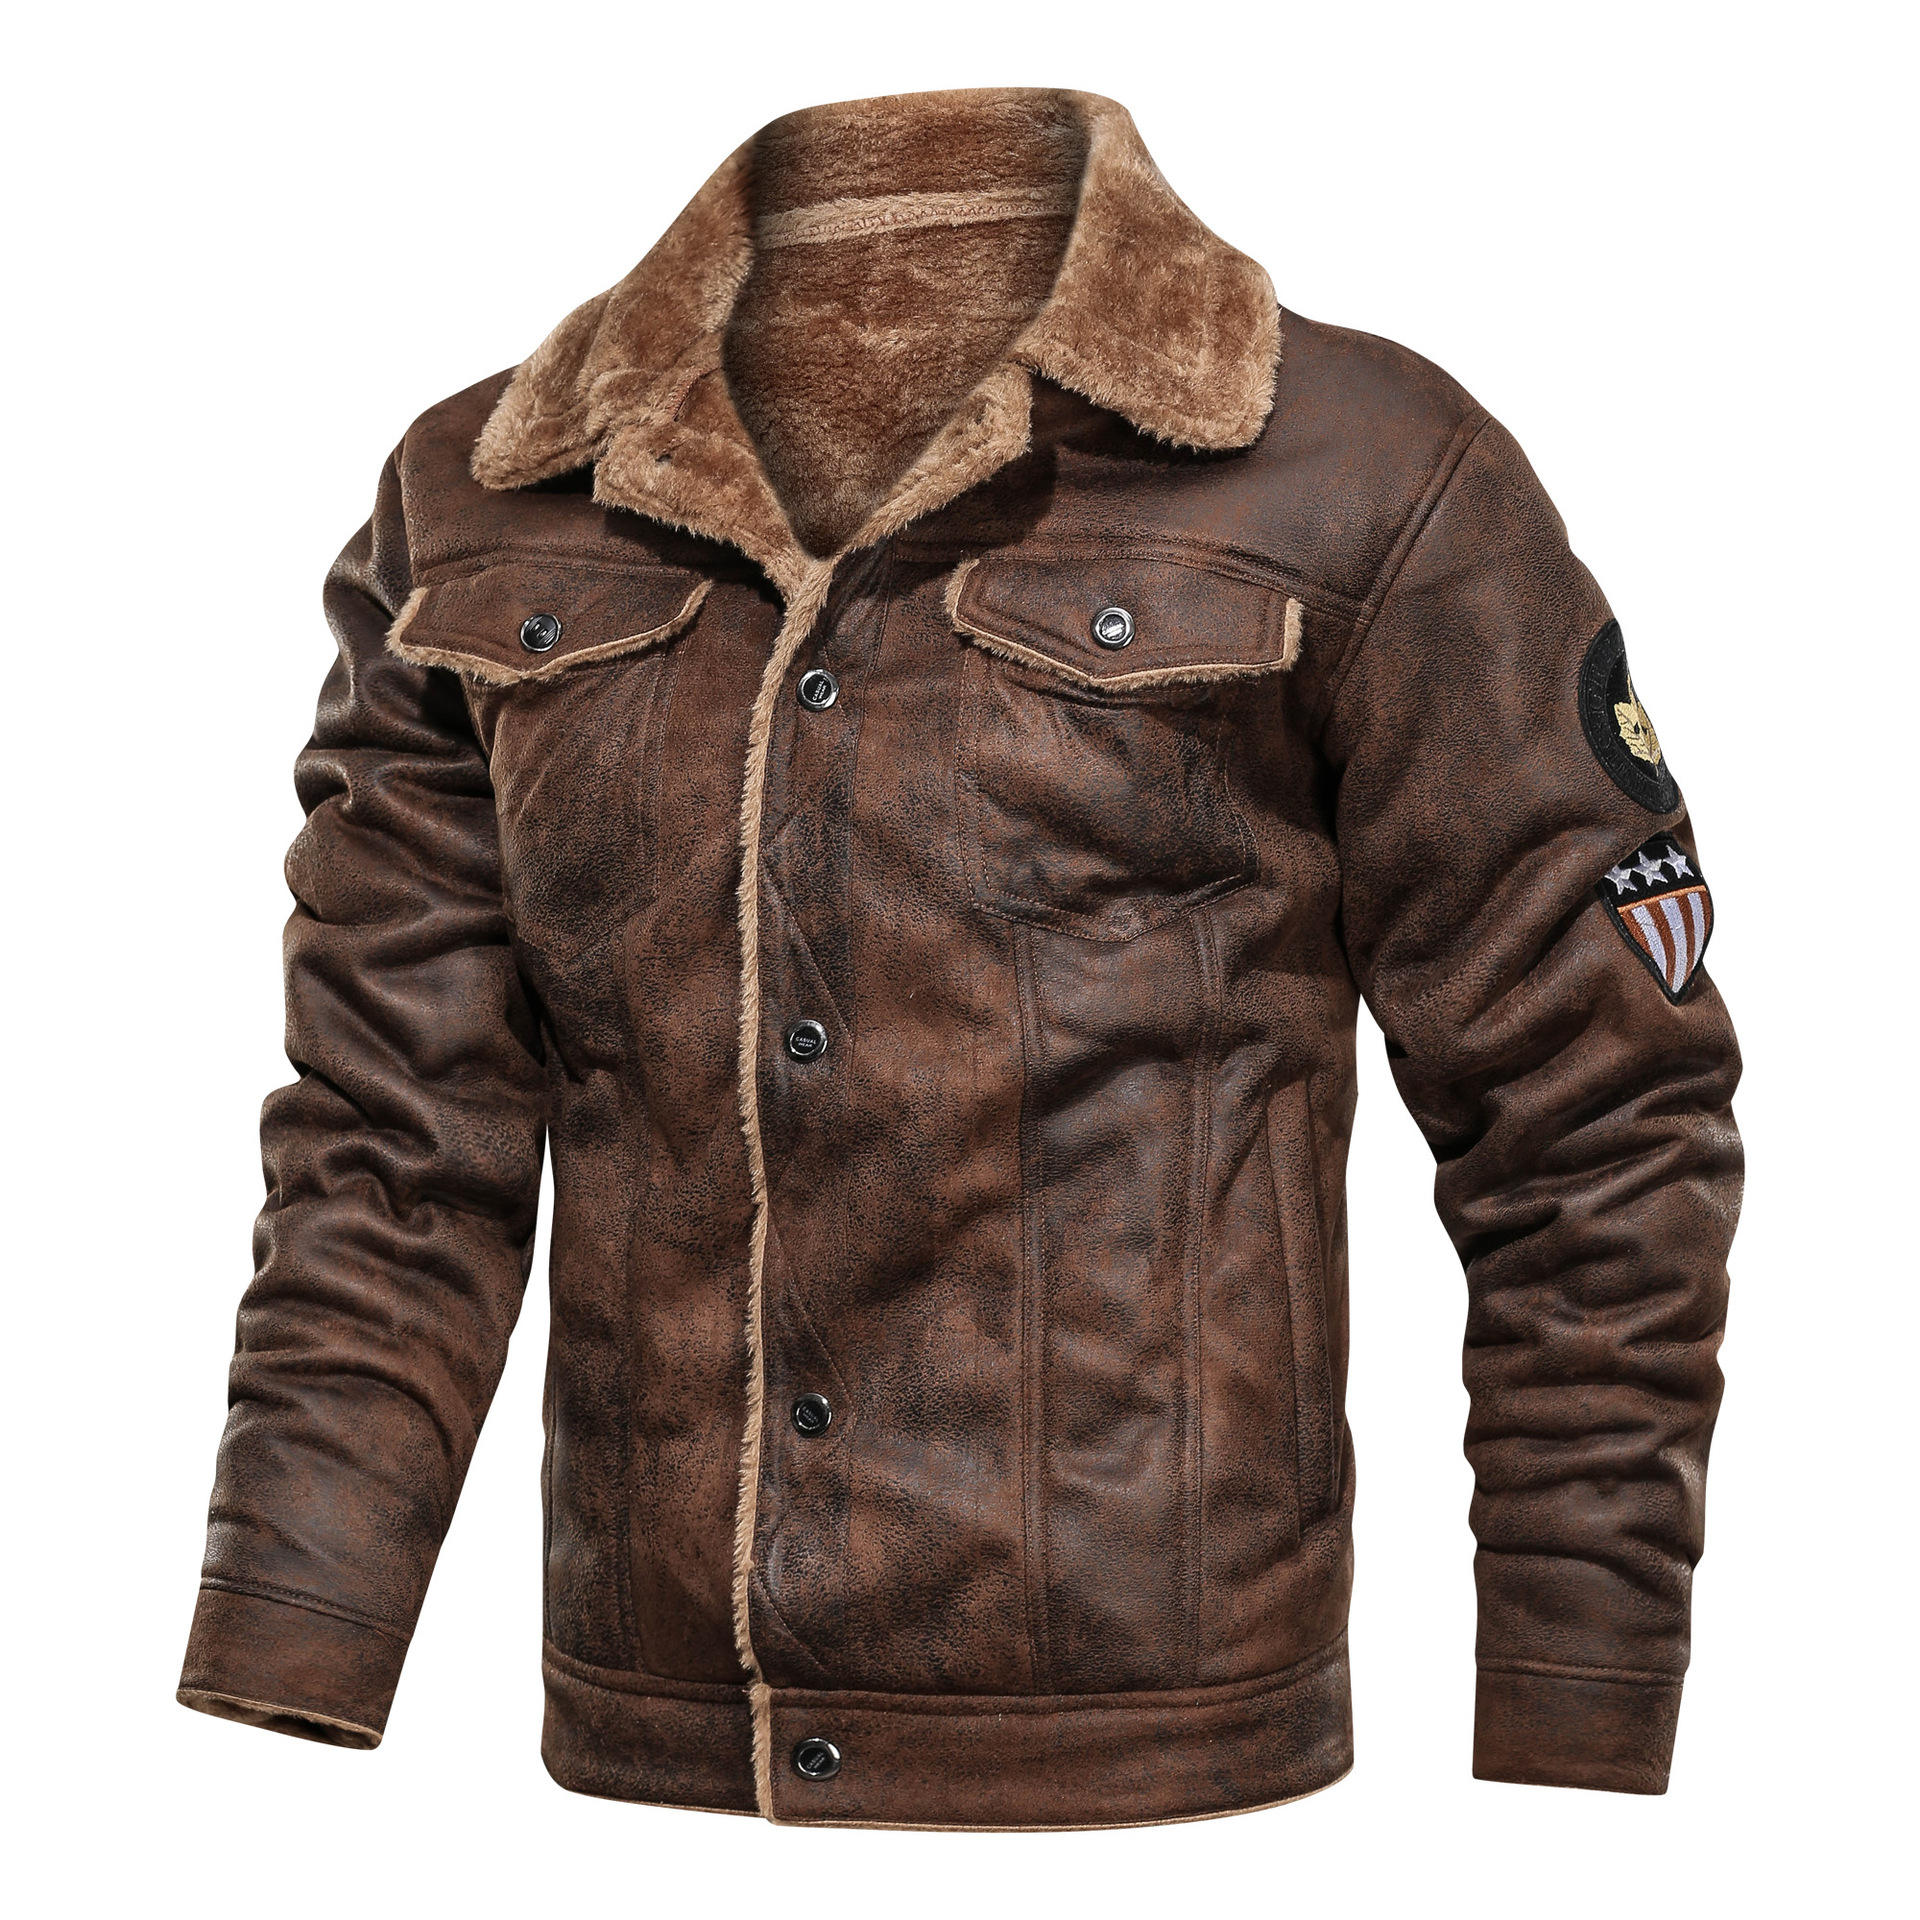 RTS Hot selling men jackets winter Lapel plus size Suede casual loose leather jackets men's